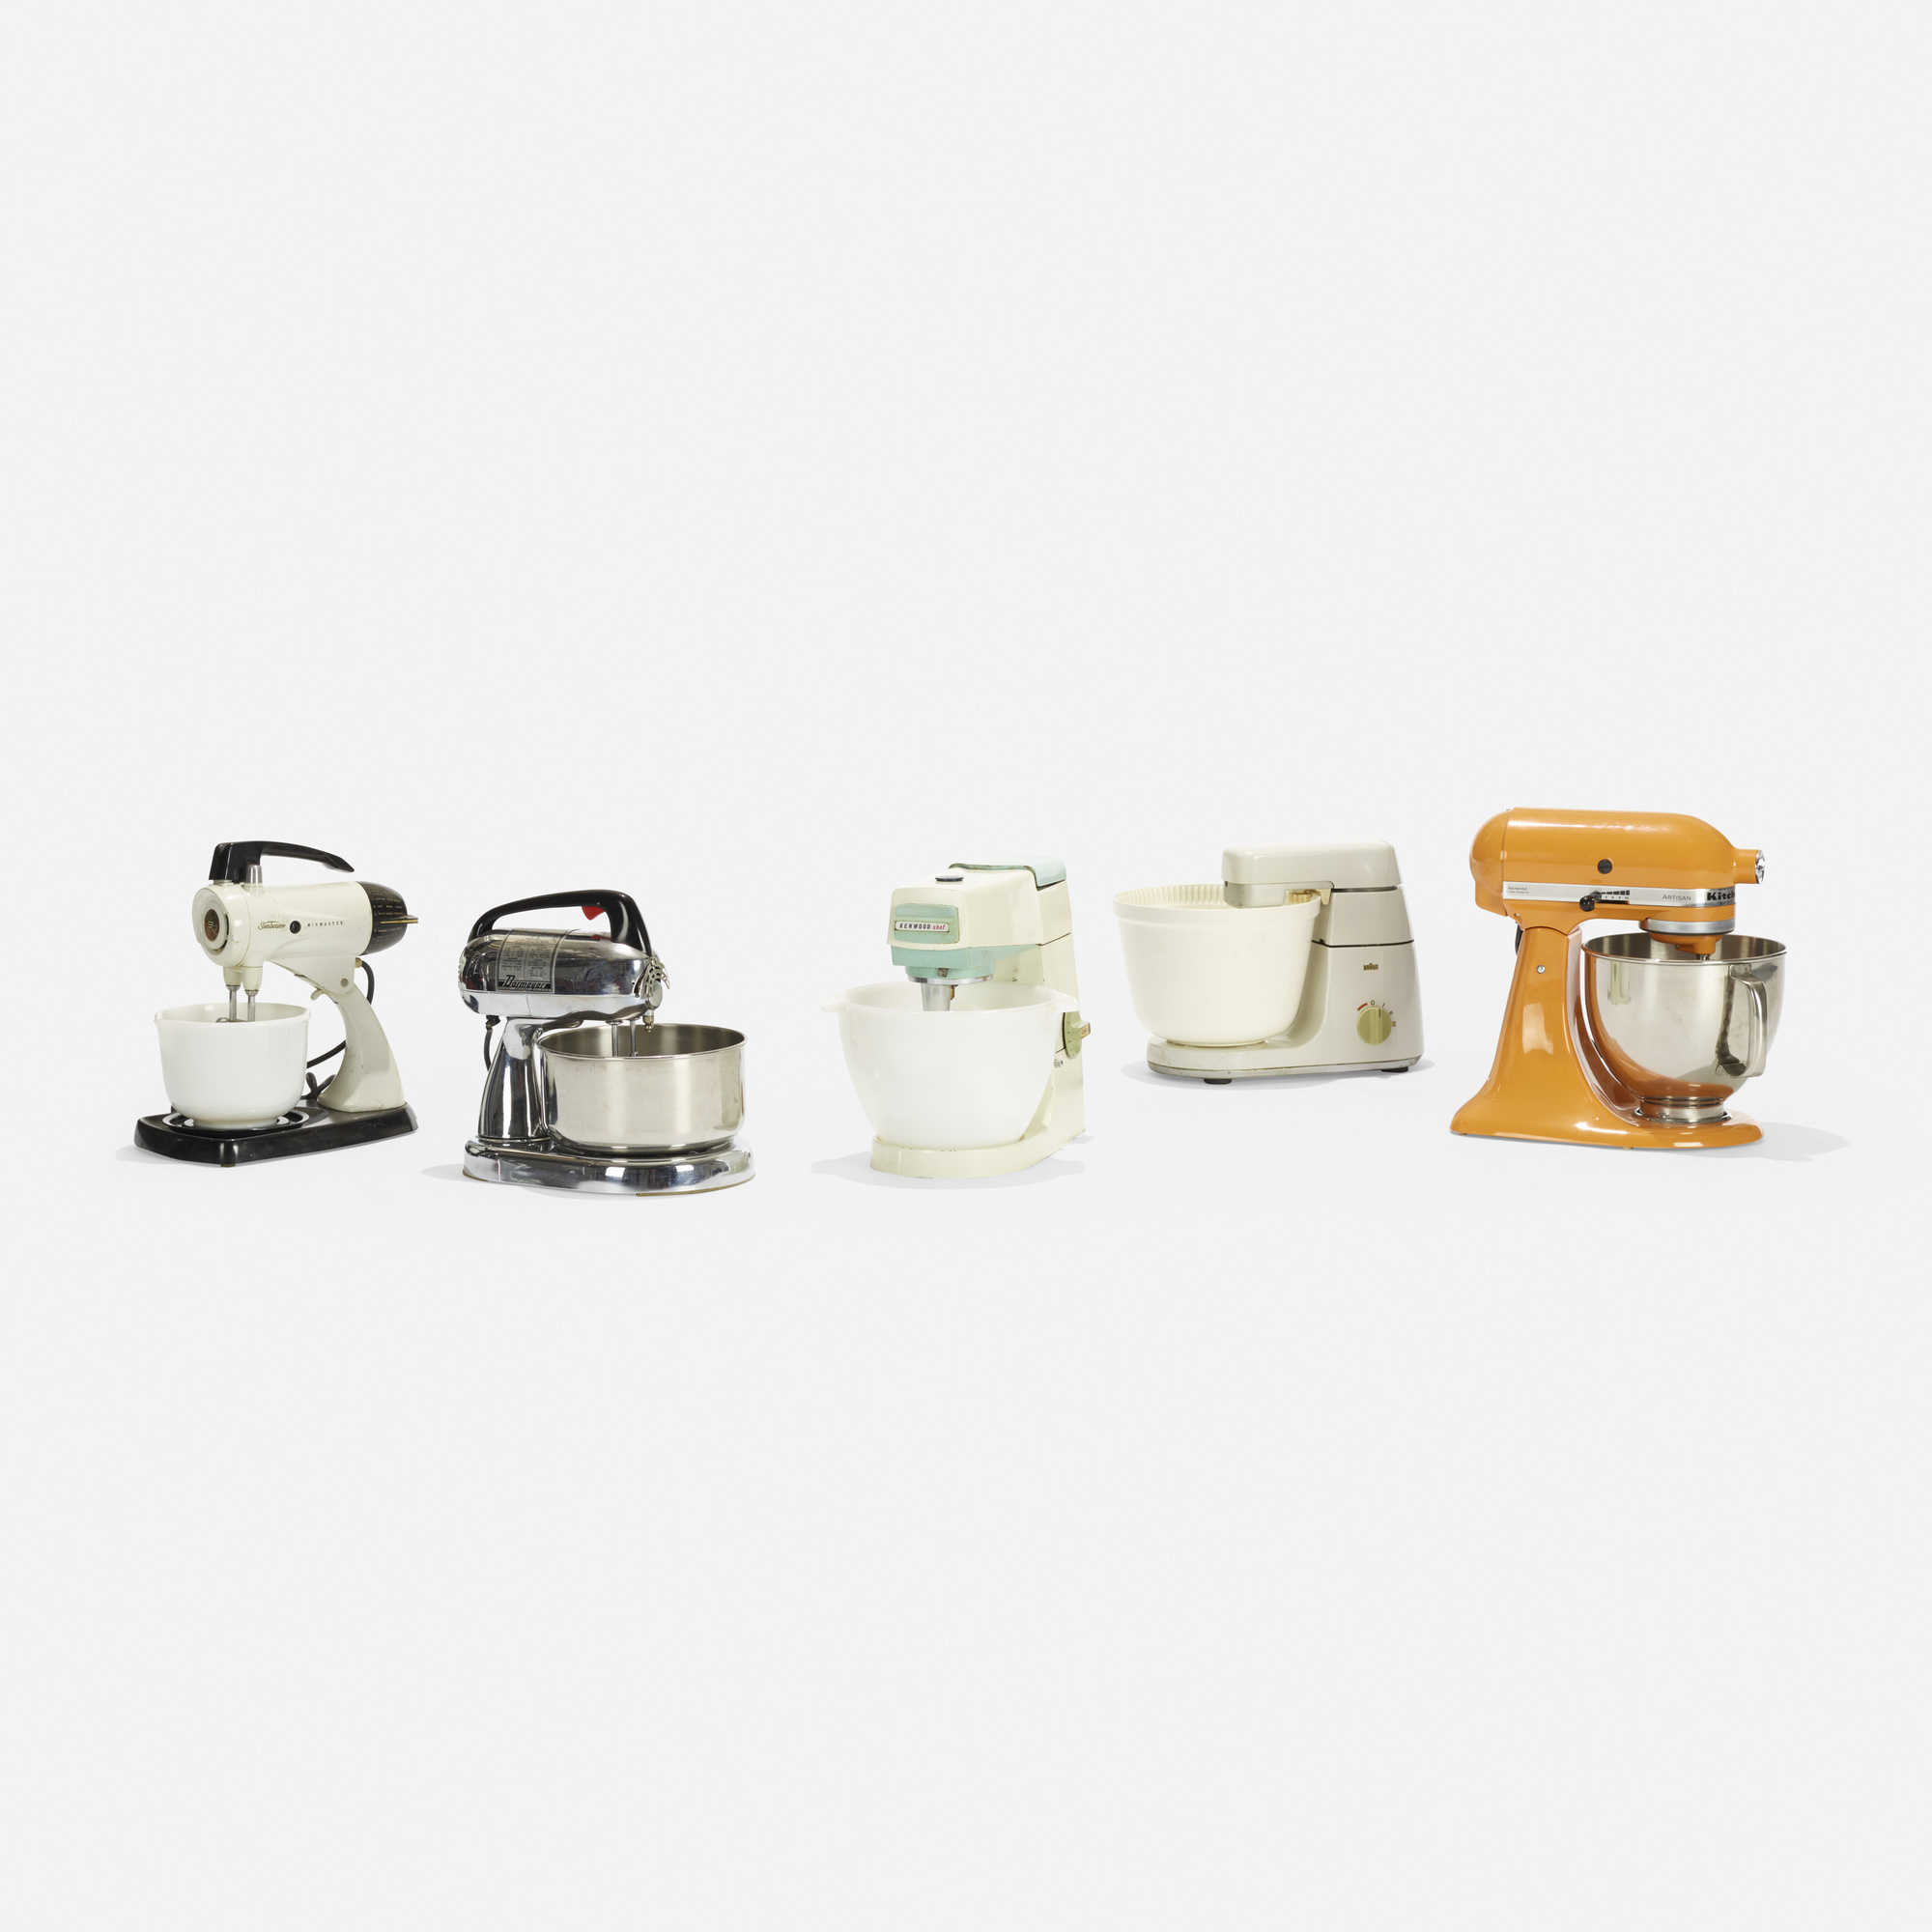 190:  / collection of five standing mixers (1 of 1)